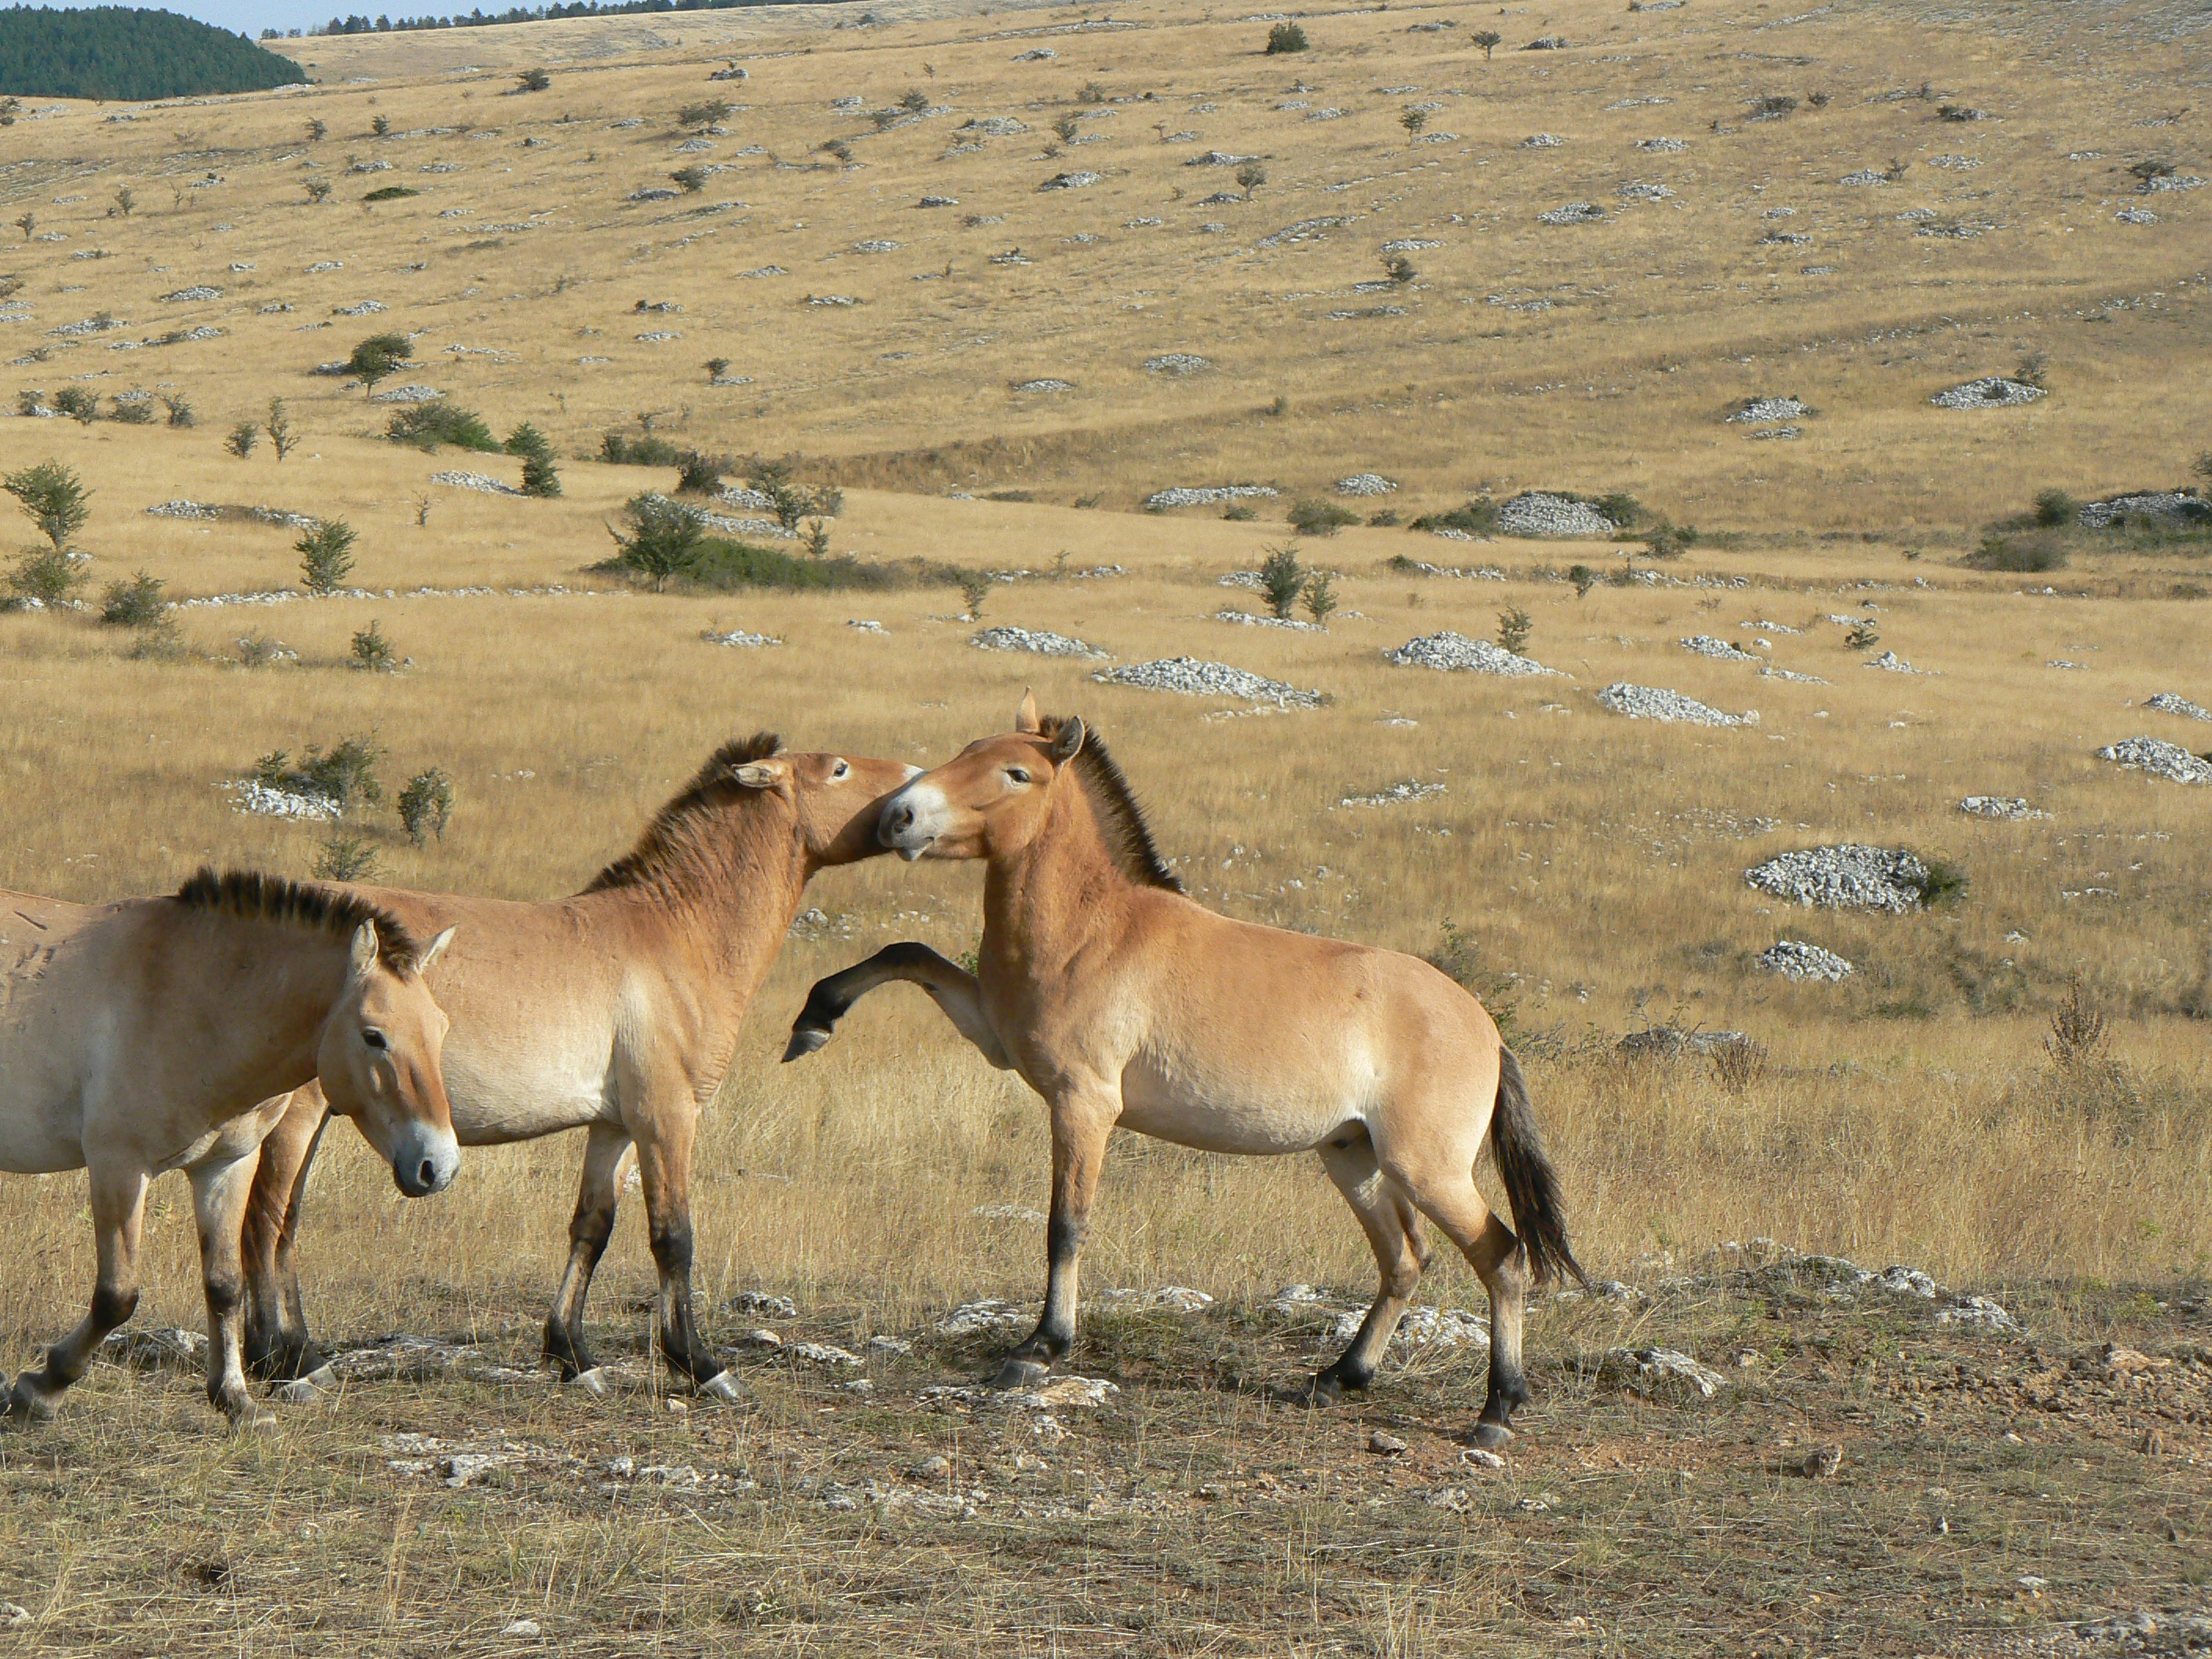 http://upload.wikimedia.org/wikipedia/commons/5/52/France_Loz%C3%A8re_Causse_M%C3%A9jean_Chevaux_de_Przewalski_20.jpg